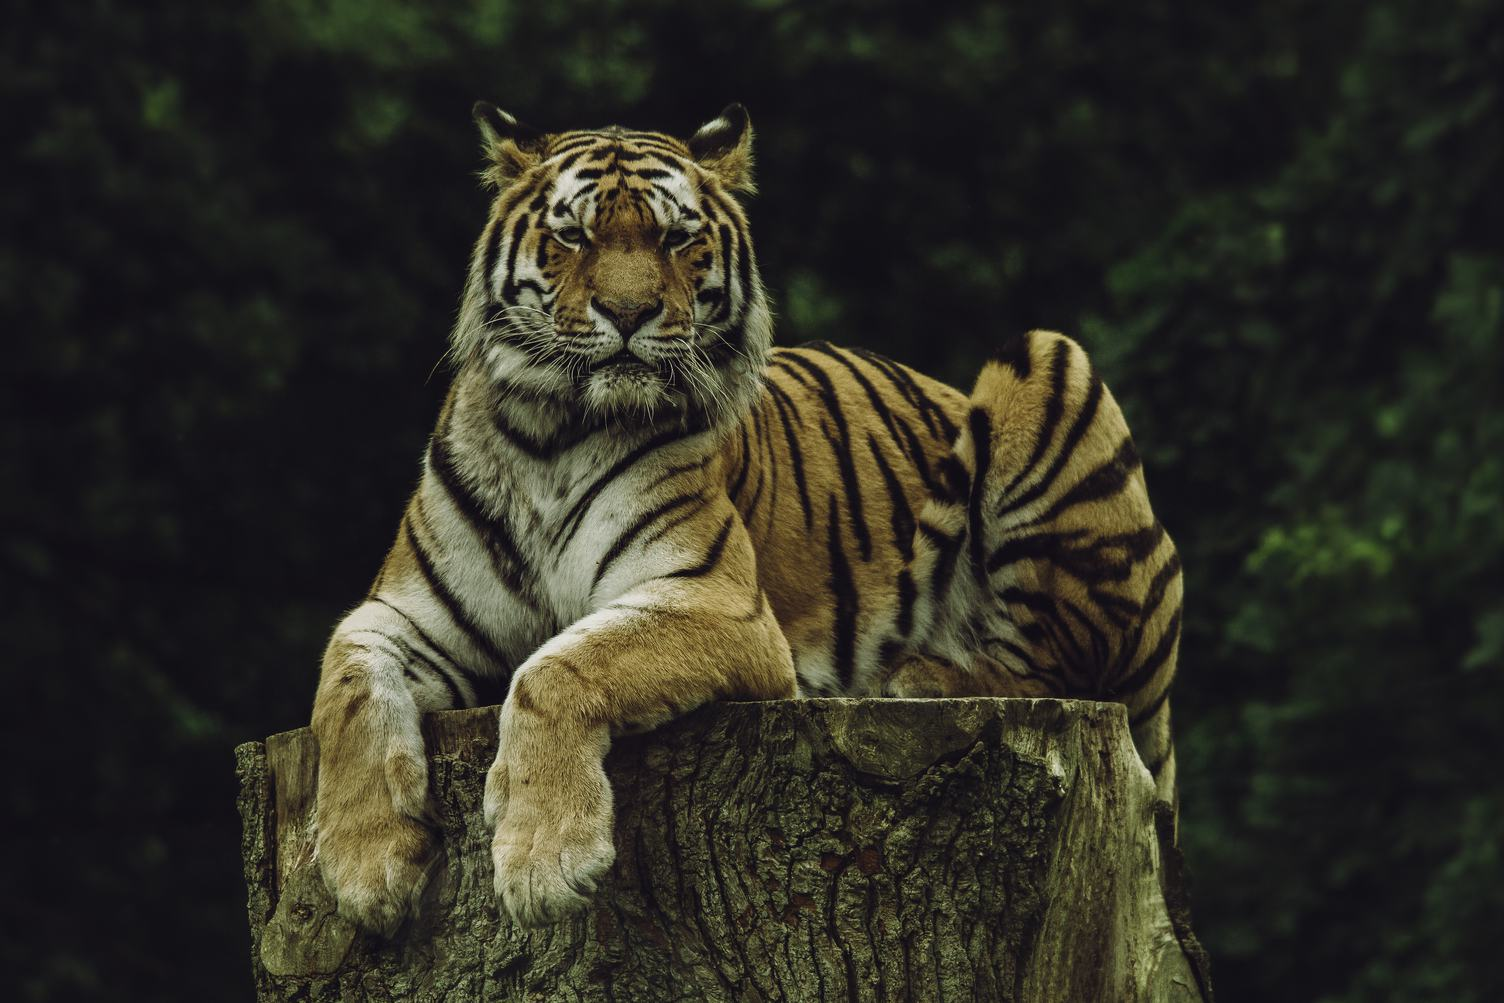 A Tiger Resting on a Tree Trunk